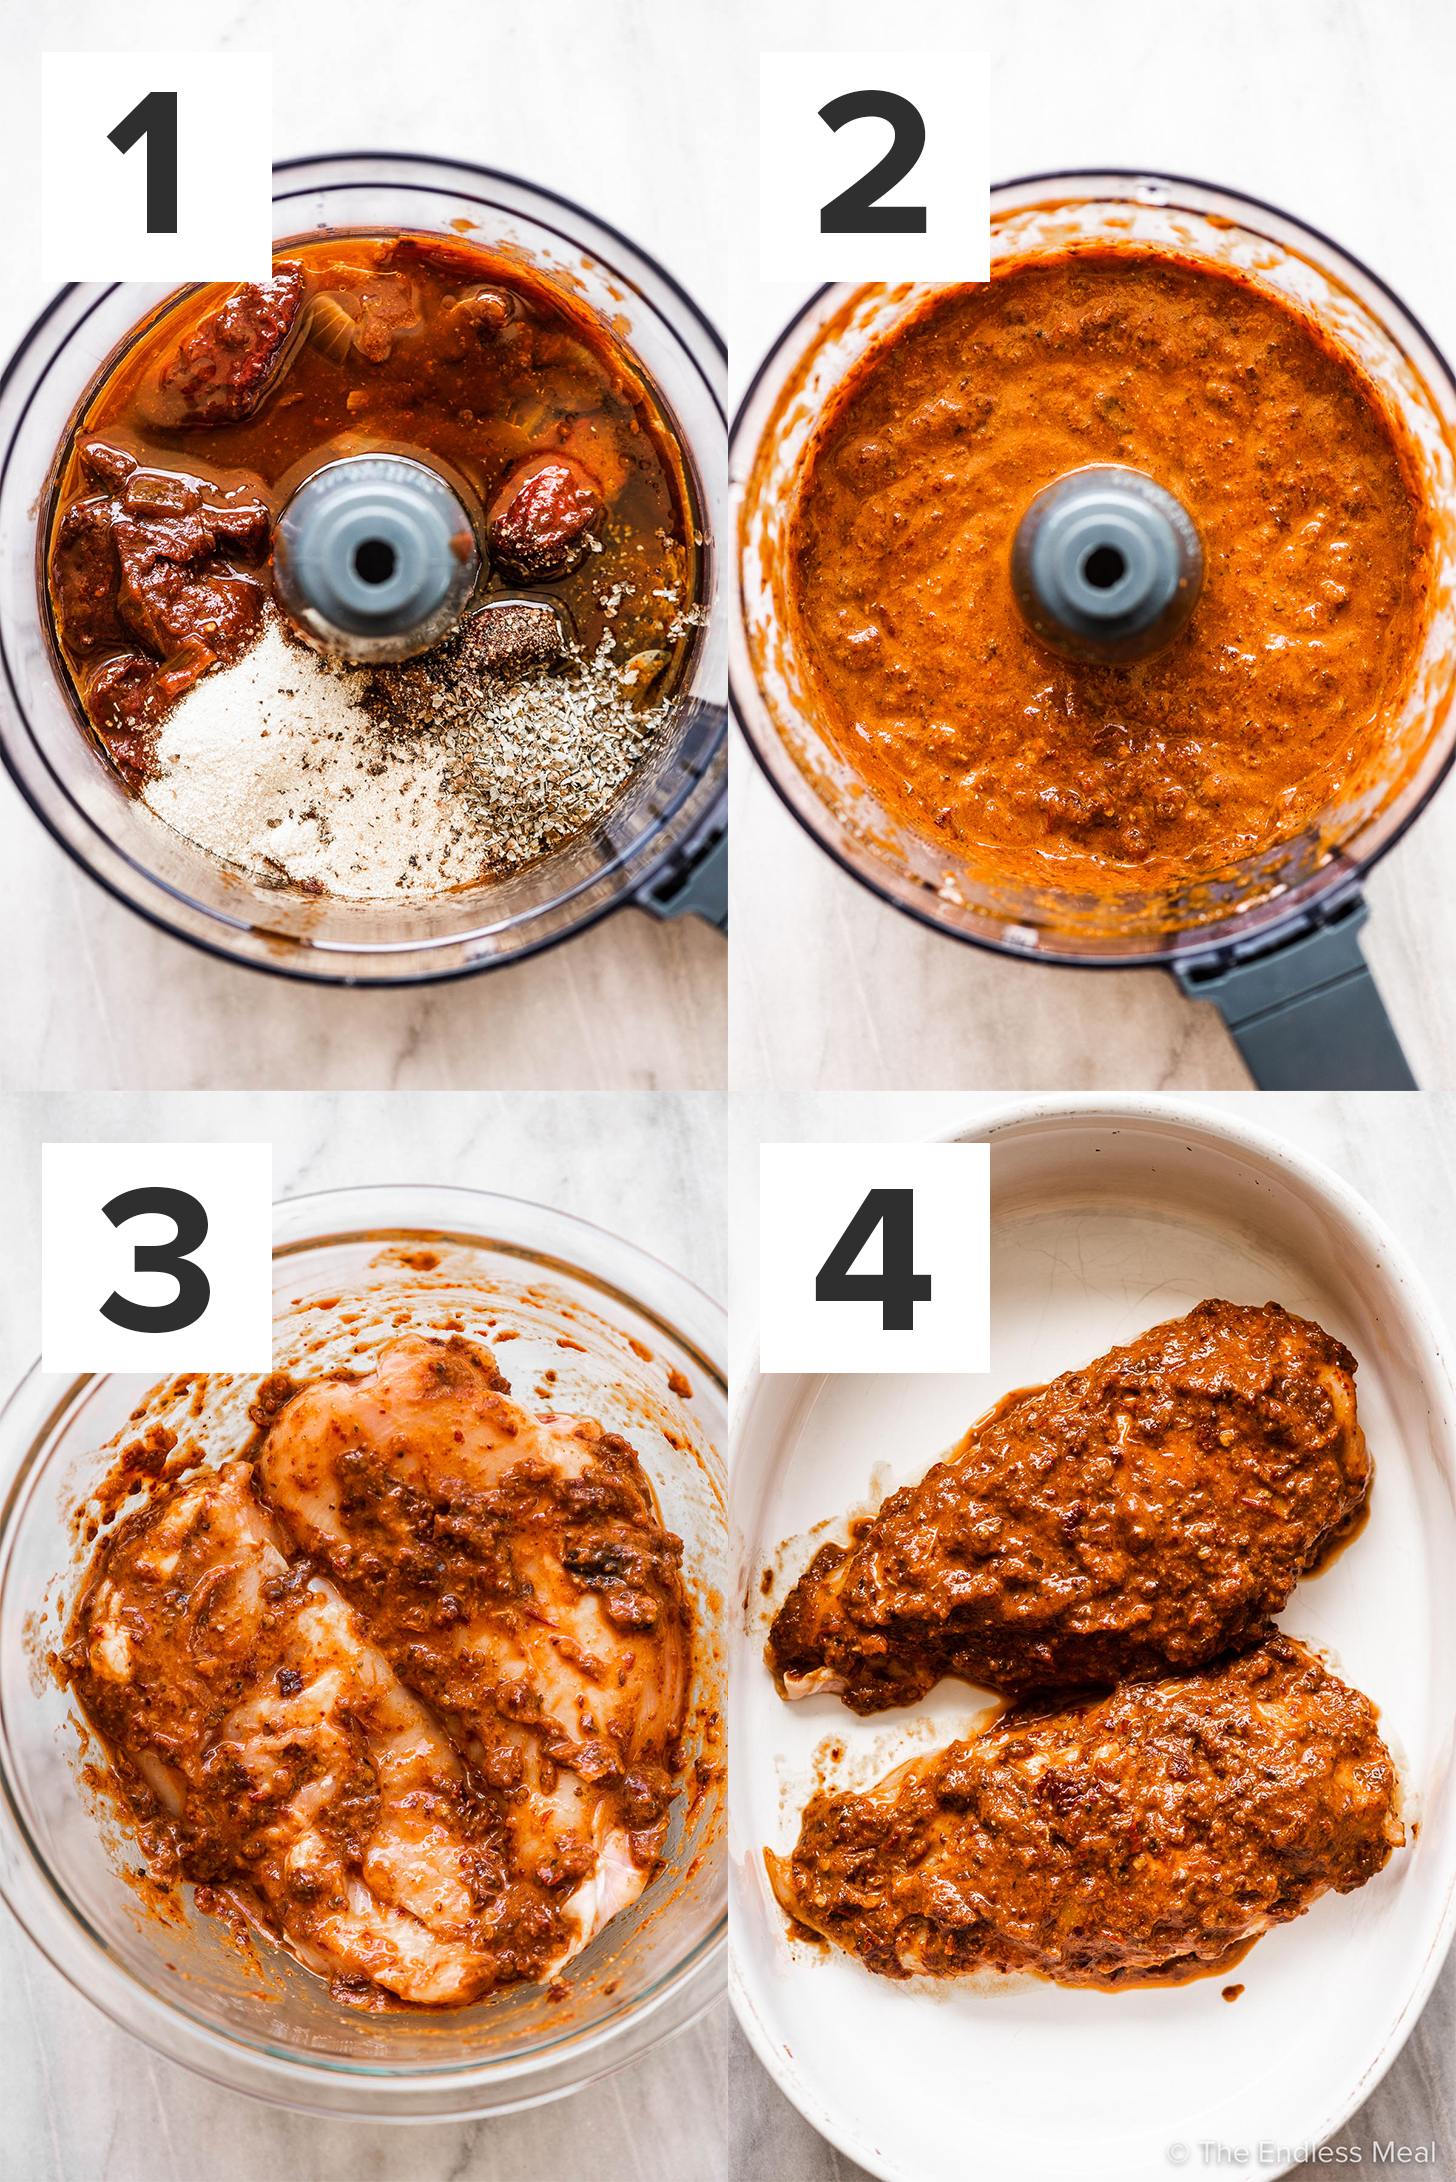 4 pictures showing how to make this spicy chicken marinade recipe.